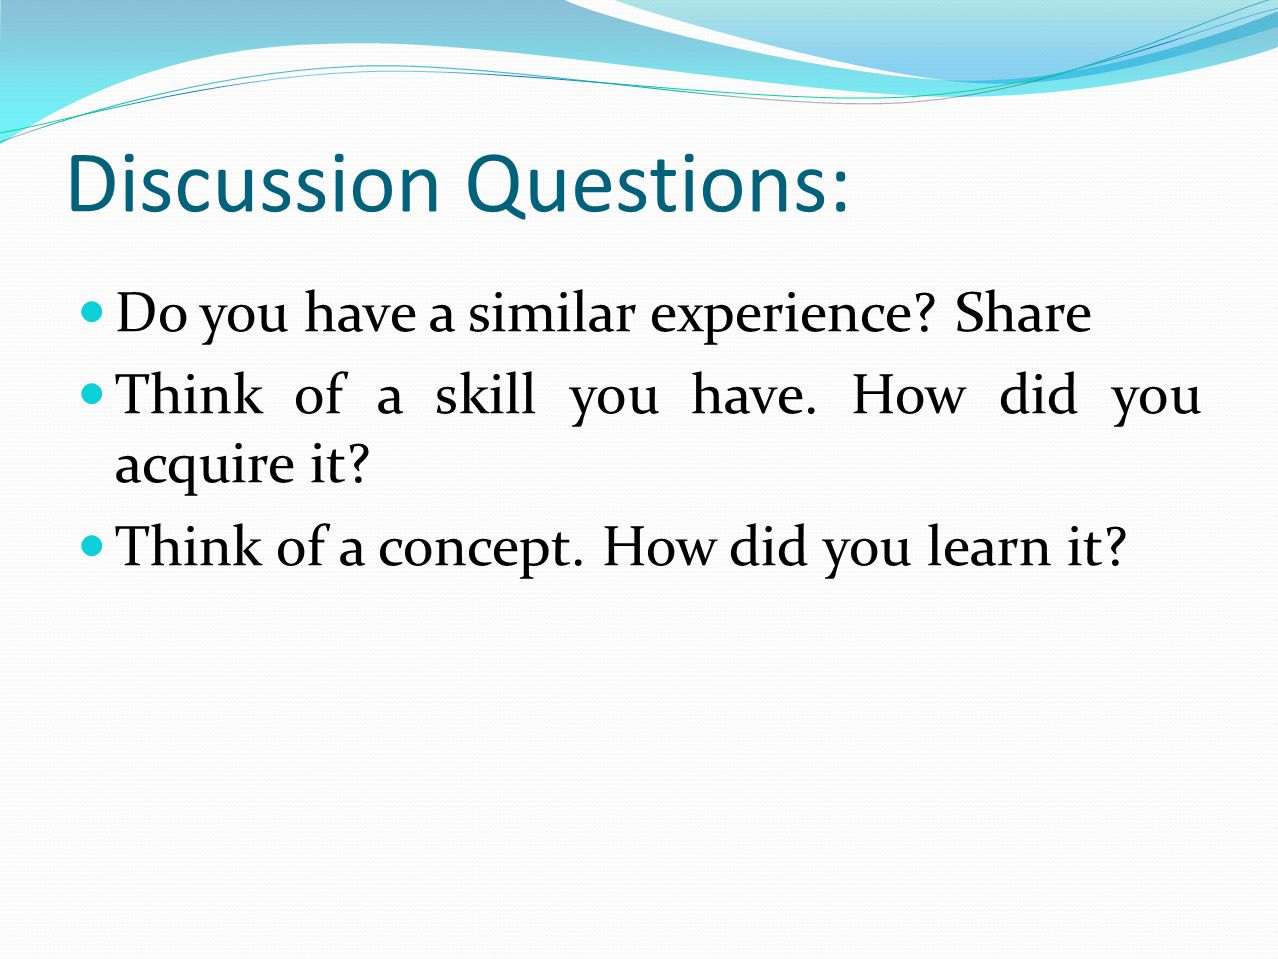 Discussion Questions: Do you have a similar experience? Share Think of a skill you have. How did you acquire it? Think of a concept. How did you learn